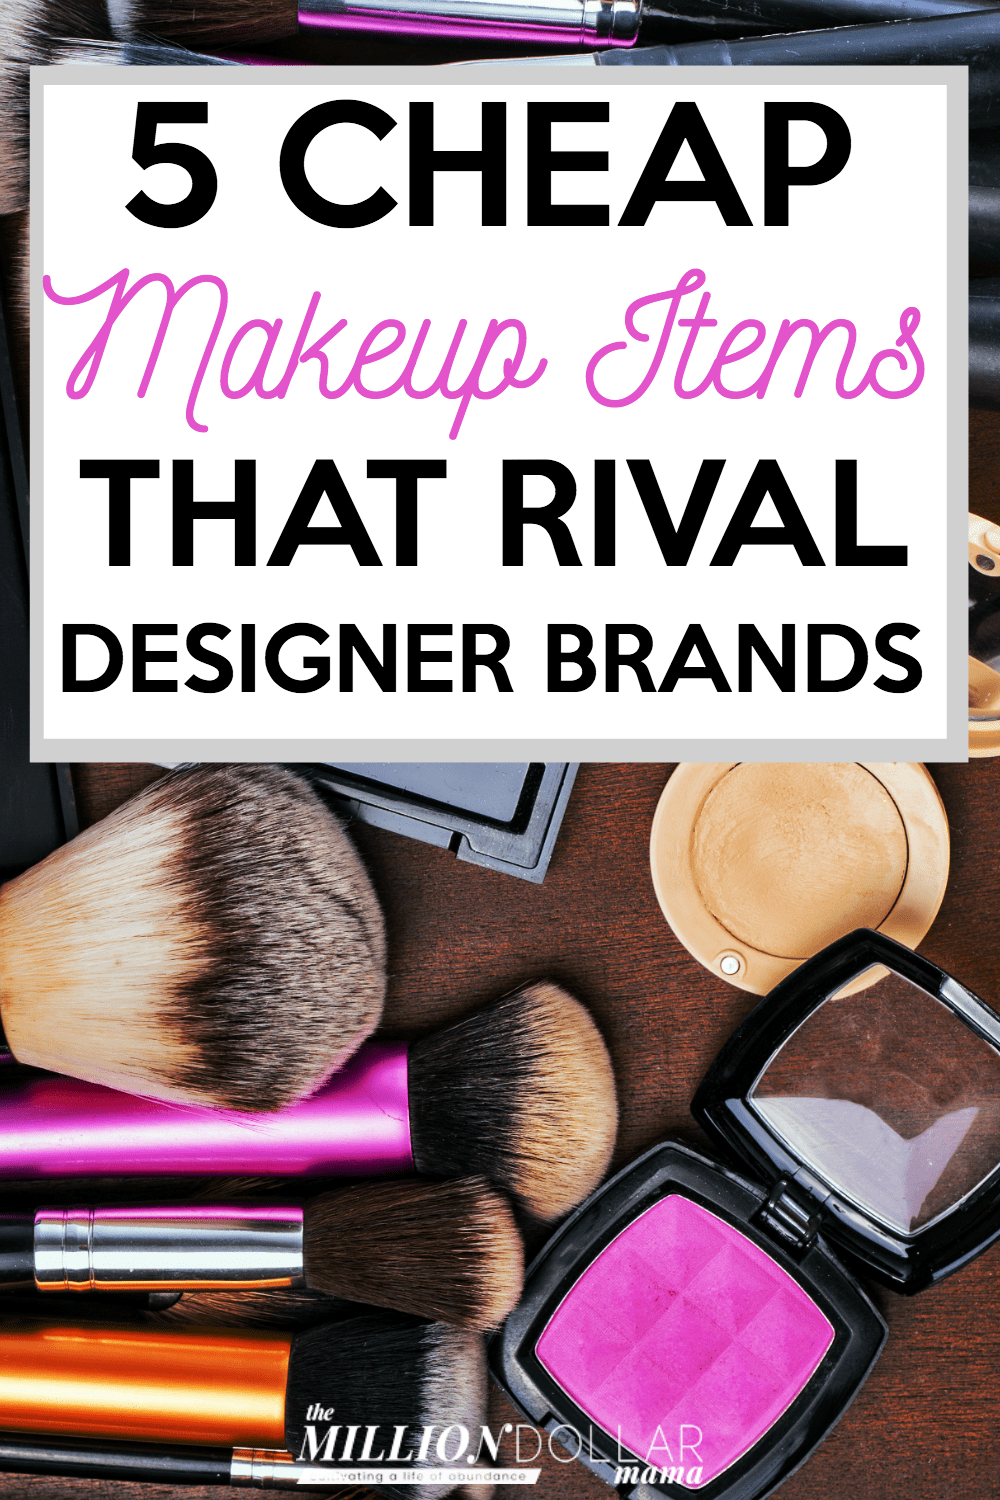 The best drugstore makeup! These 5 cheap makeup items rival designer brands.